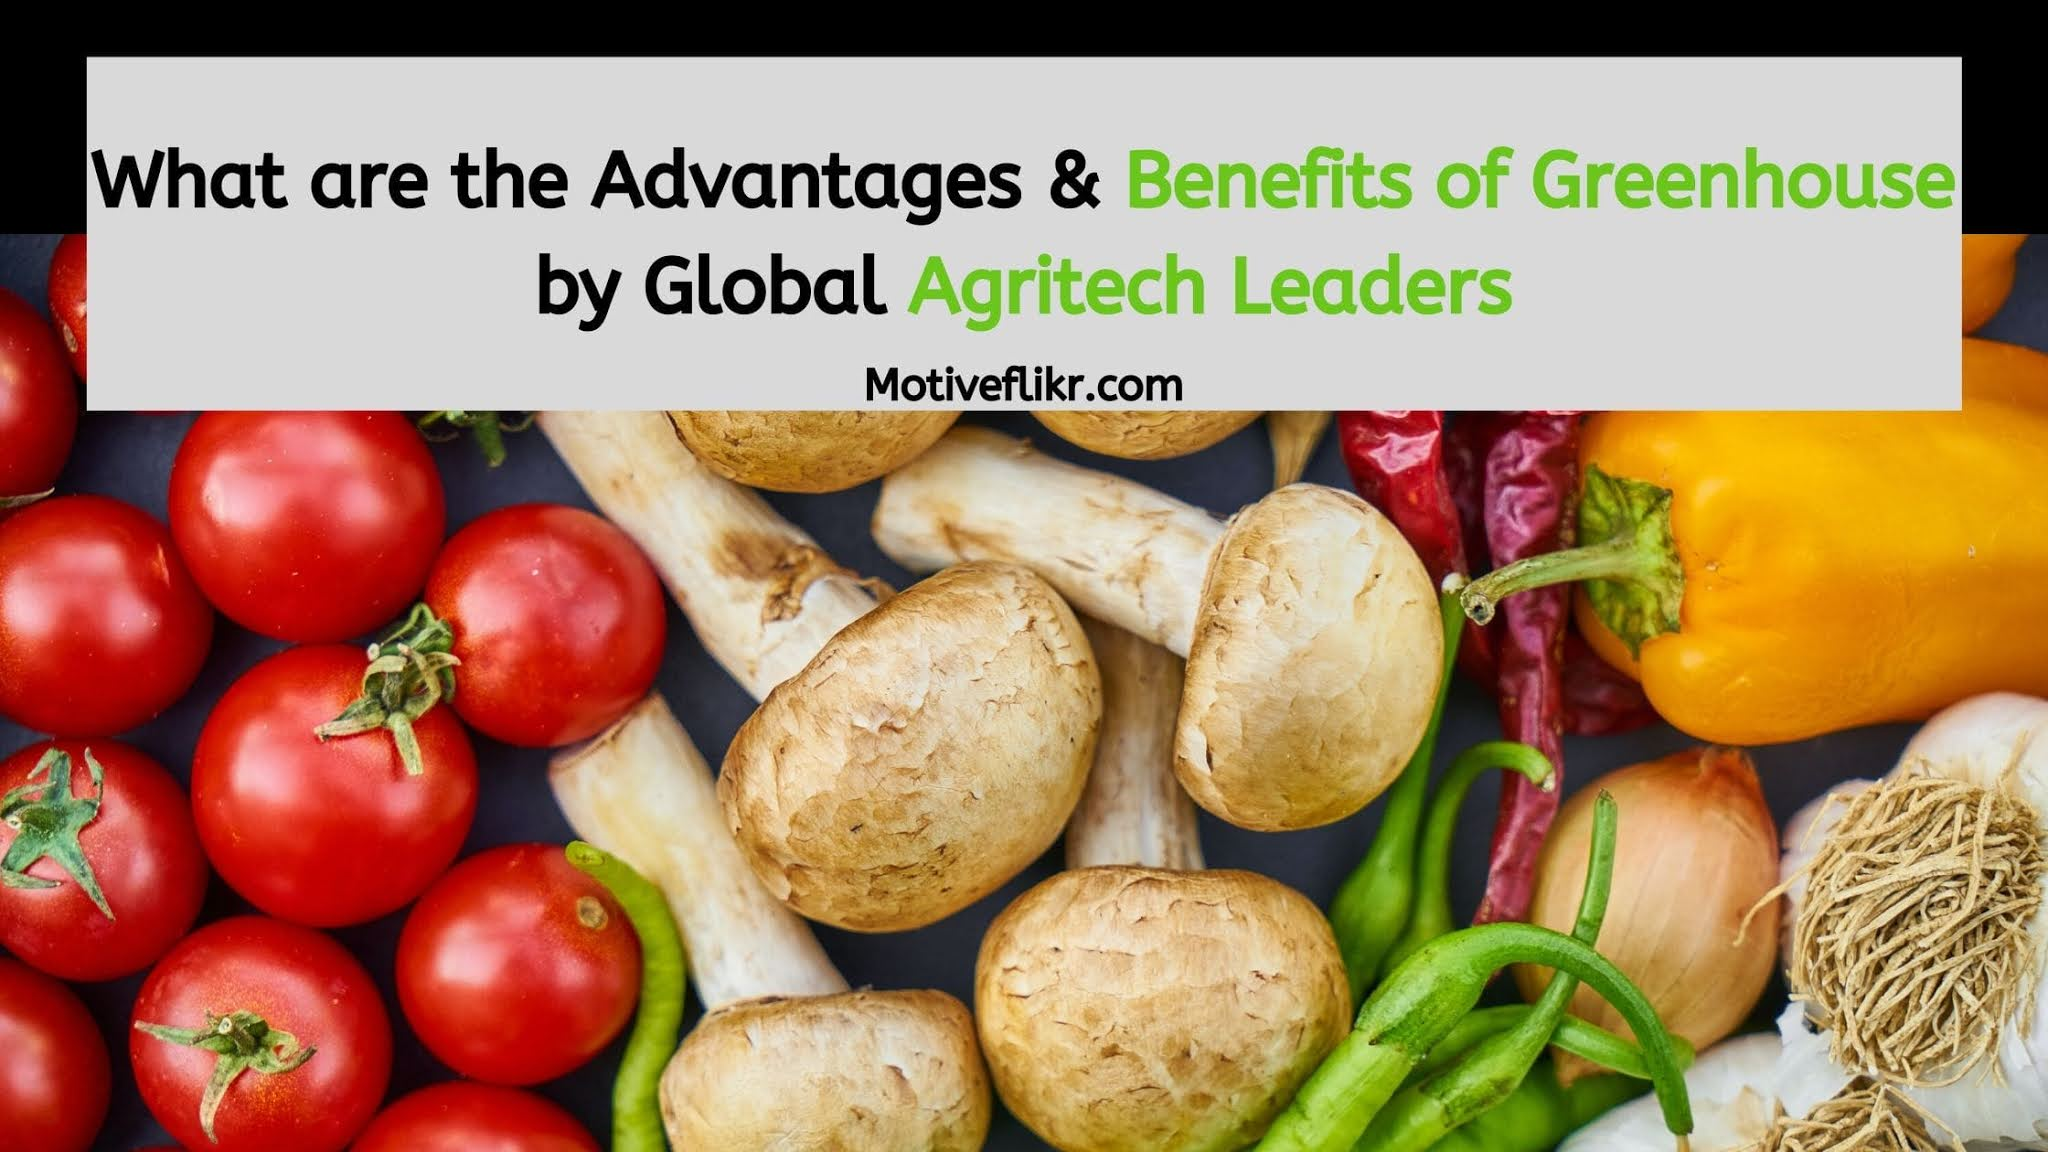 What are the Advantages & Benefits of Greenhouse by Global Agritech Leaders